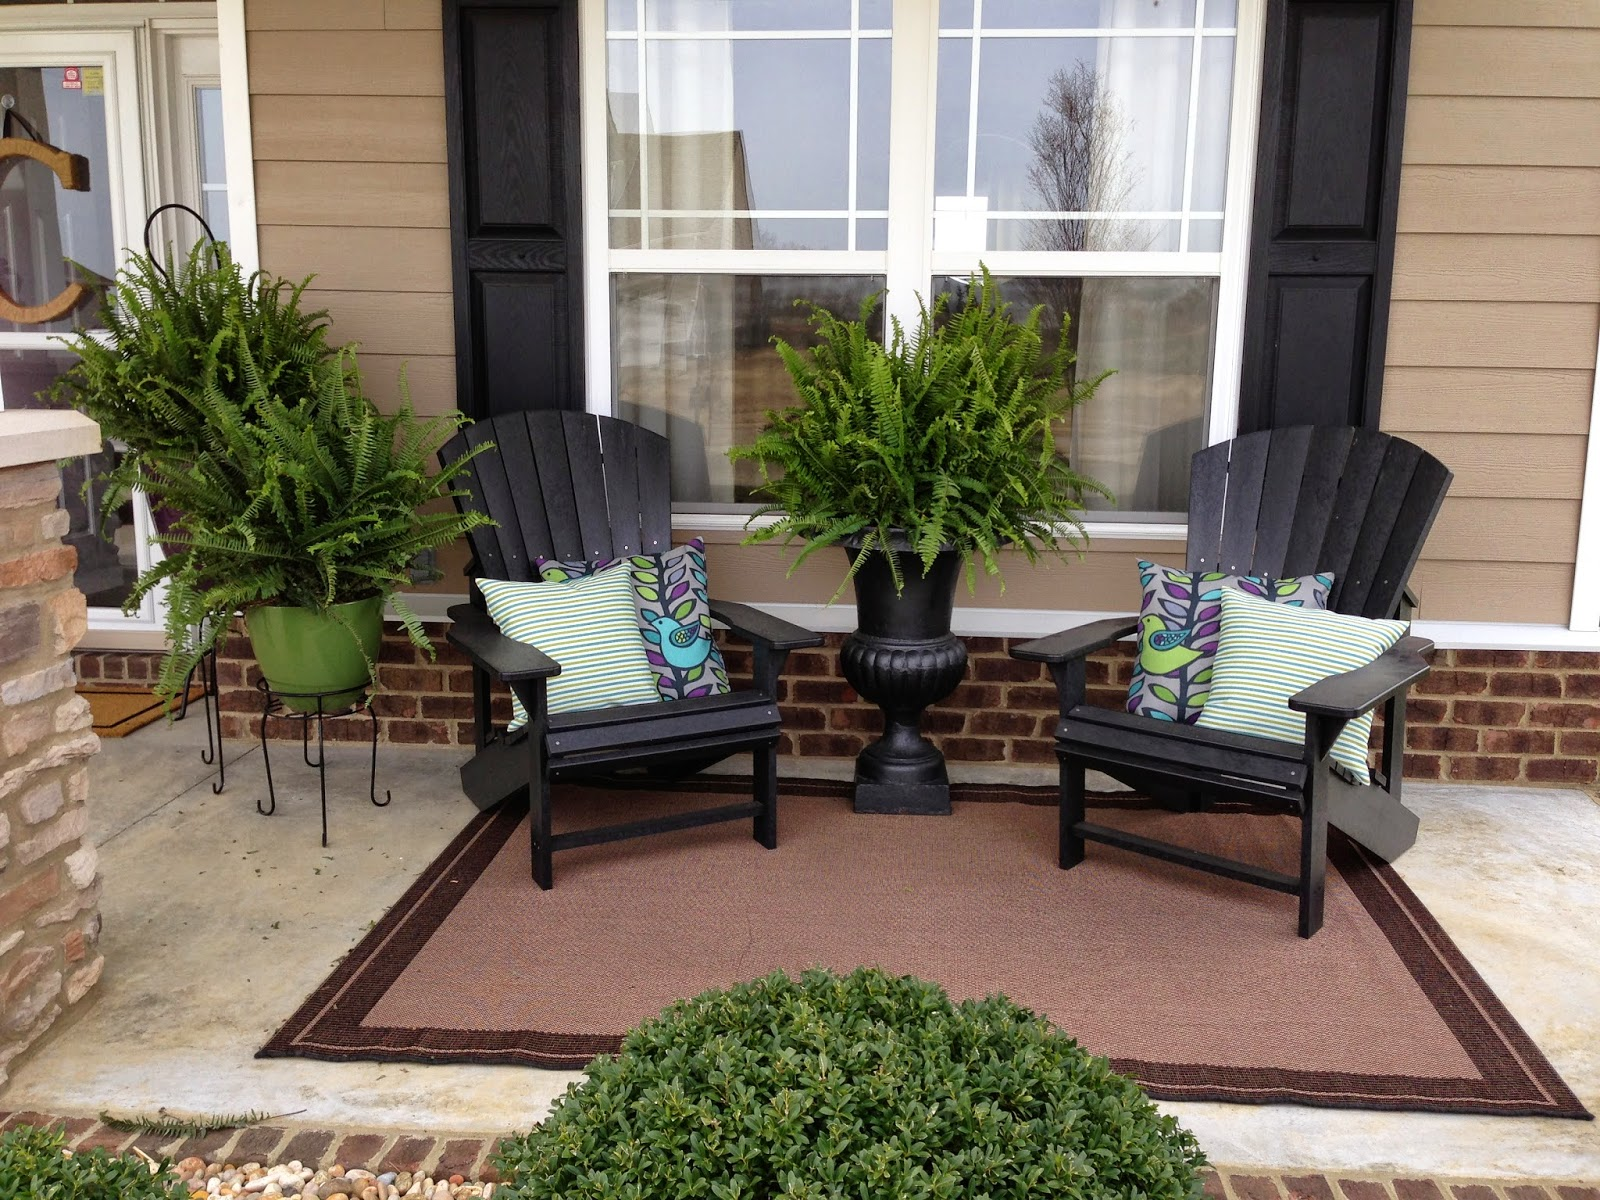 7 front porch decorating ideas pictures for your home for Small front porch decorating ideas